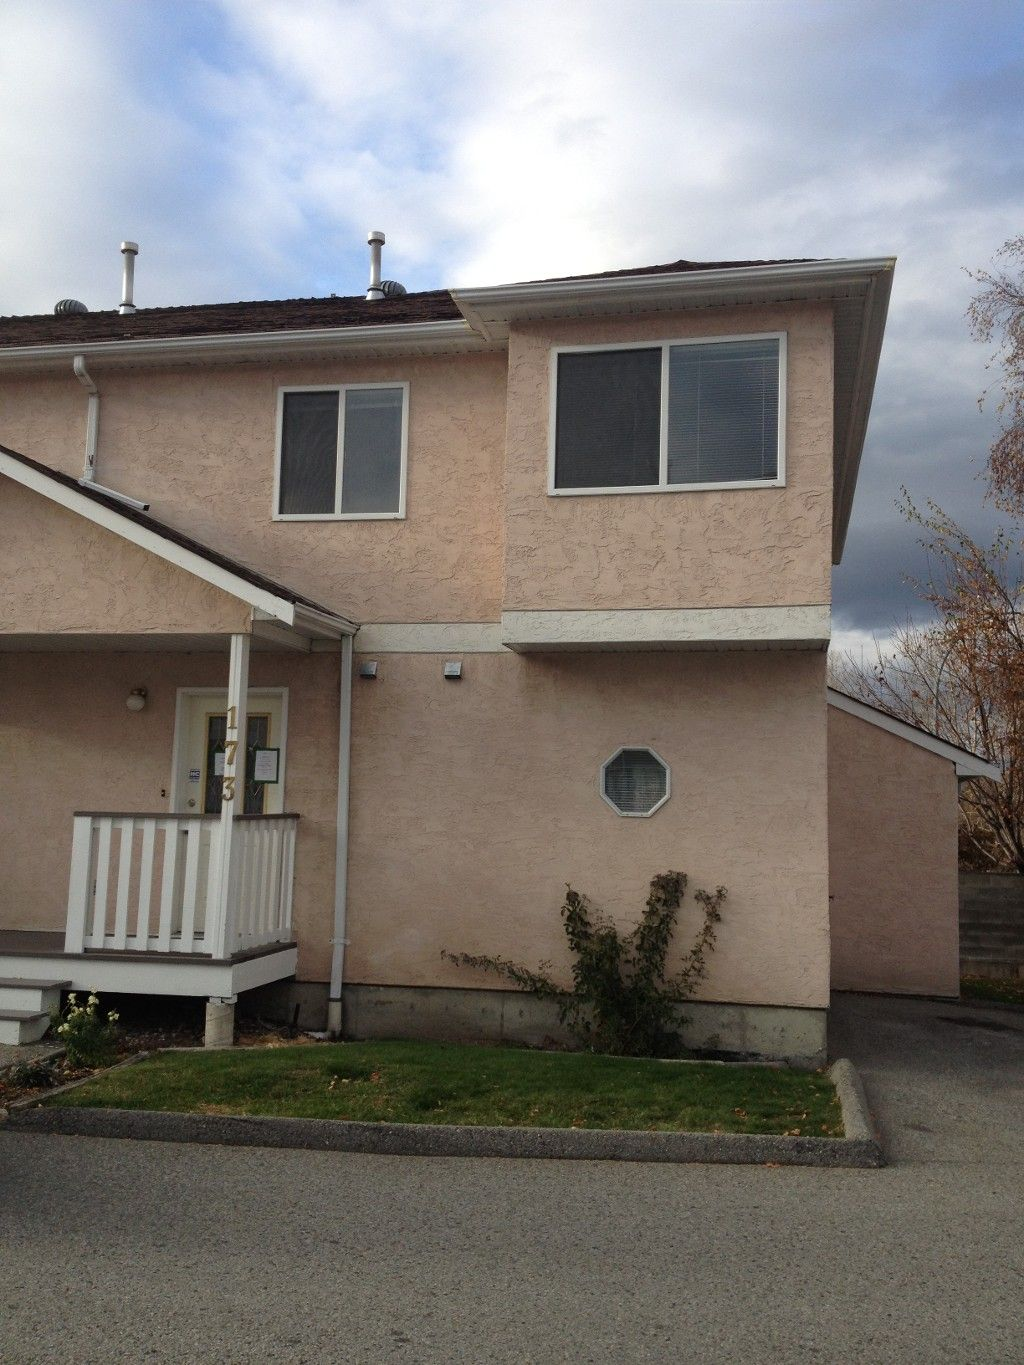 Main Photo: 173 - 1458 Penticton Avenue in Penticton: Columbia/Duncan Residential Attached for sale : MLS®# 141600